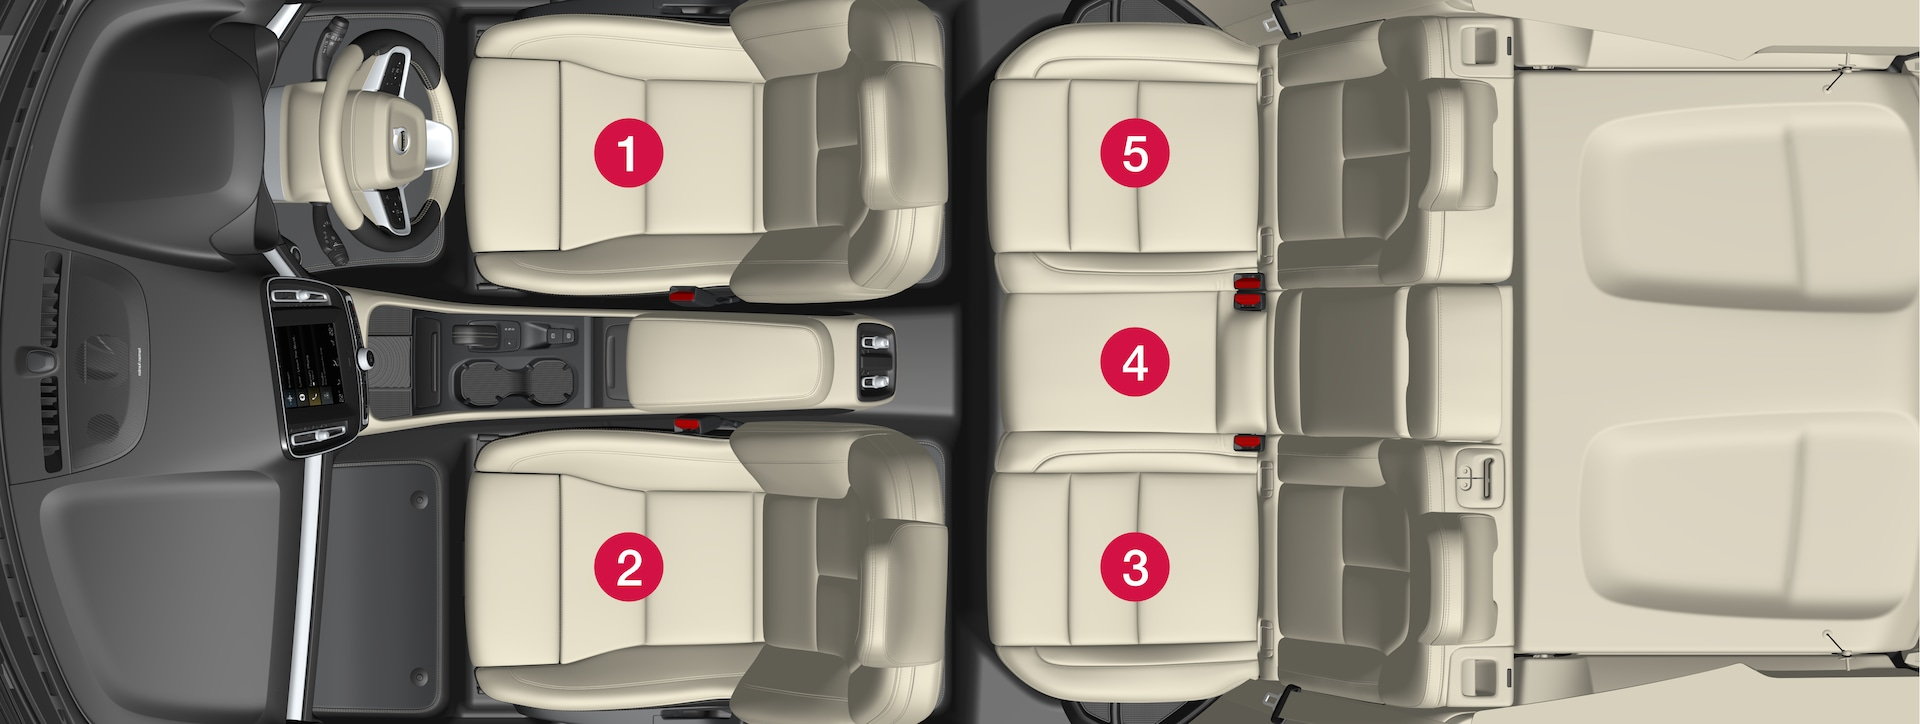 P6-XC40-1746-Safety- Child restraint placement overview right hand drive